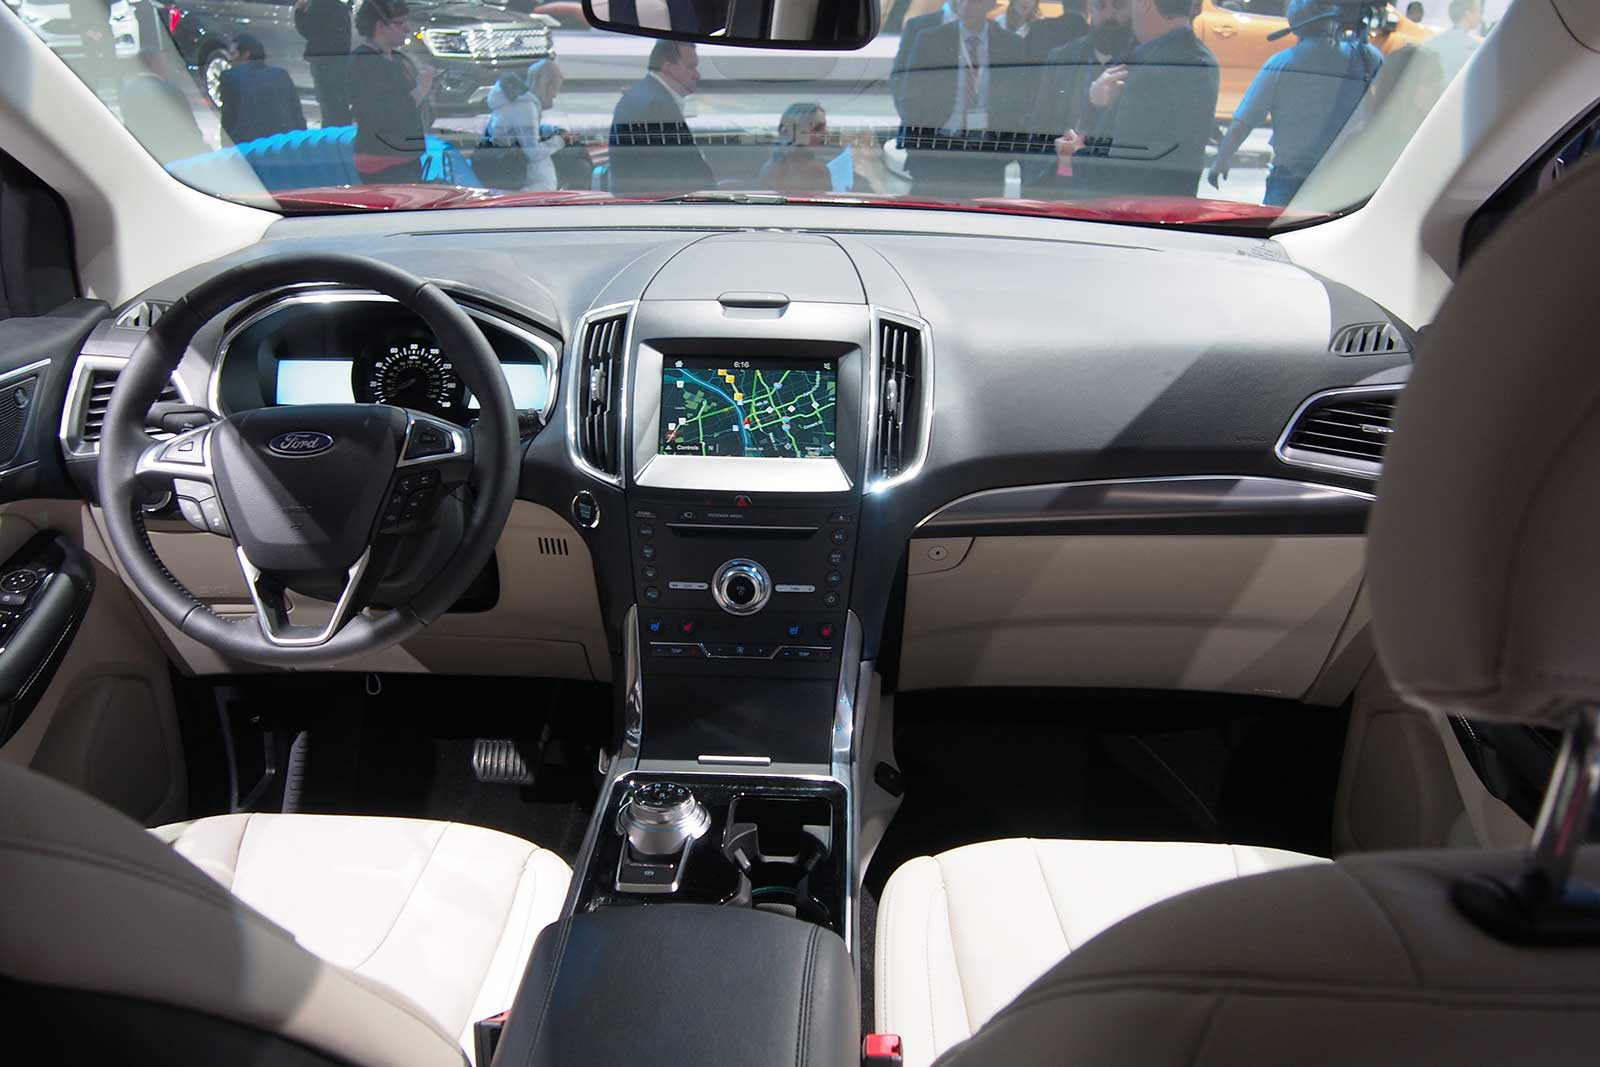 2019 ford edge interior 02